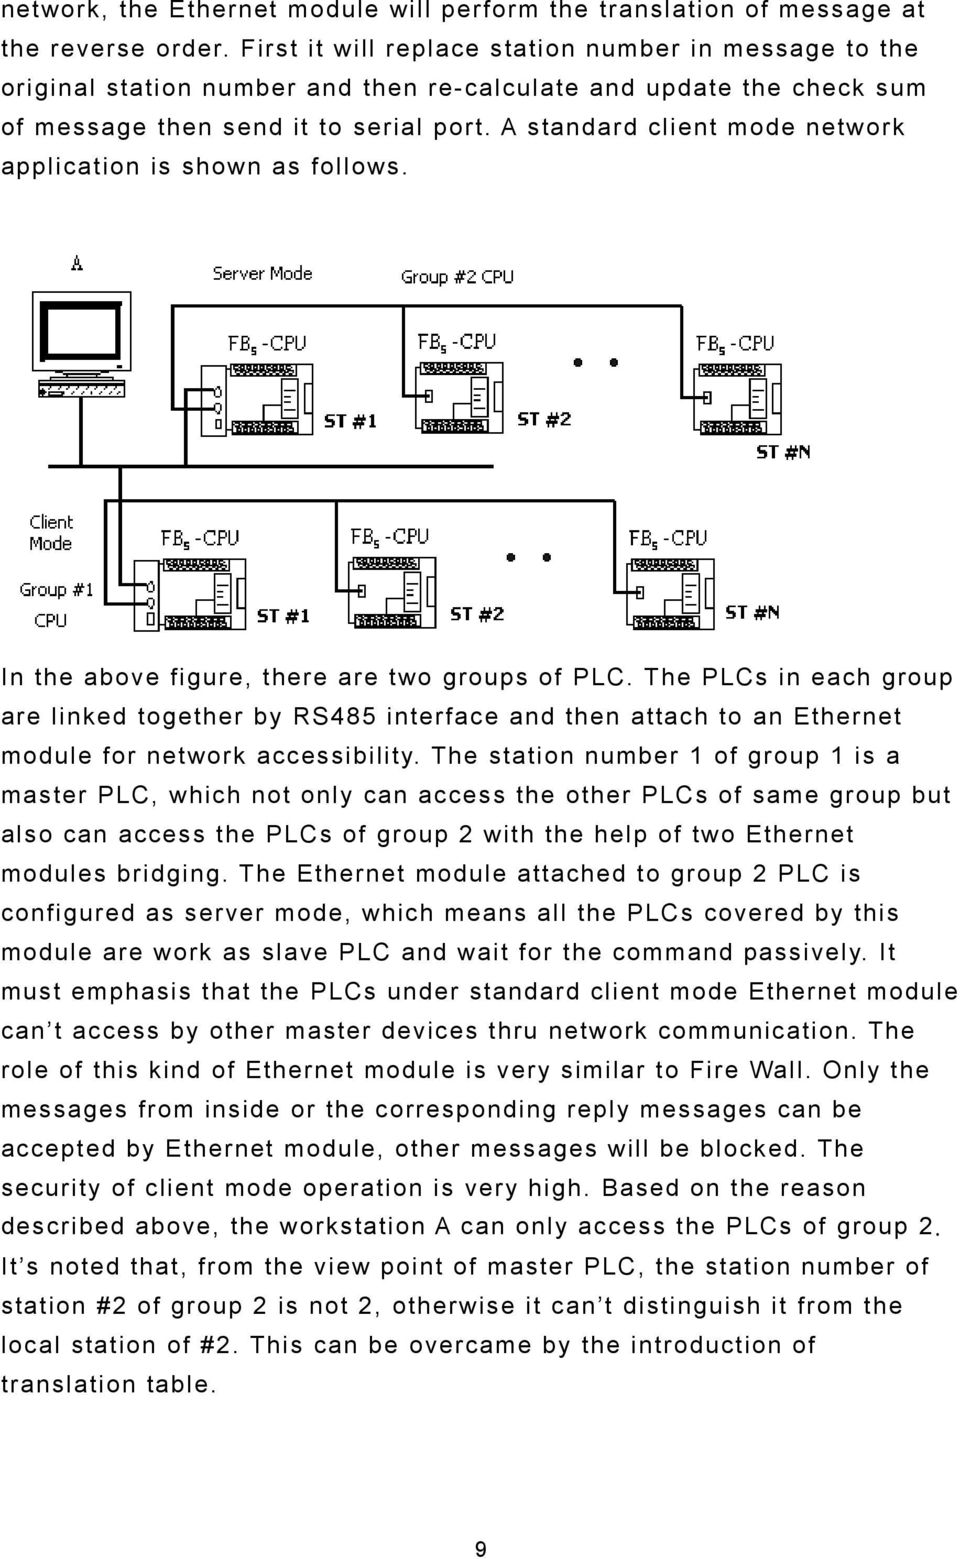 A standard client mode network application is shown as follows. In the above figure, there are two groups of PLC.